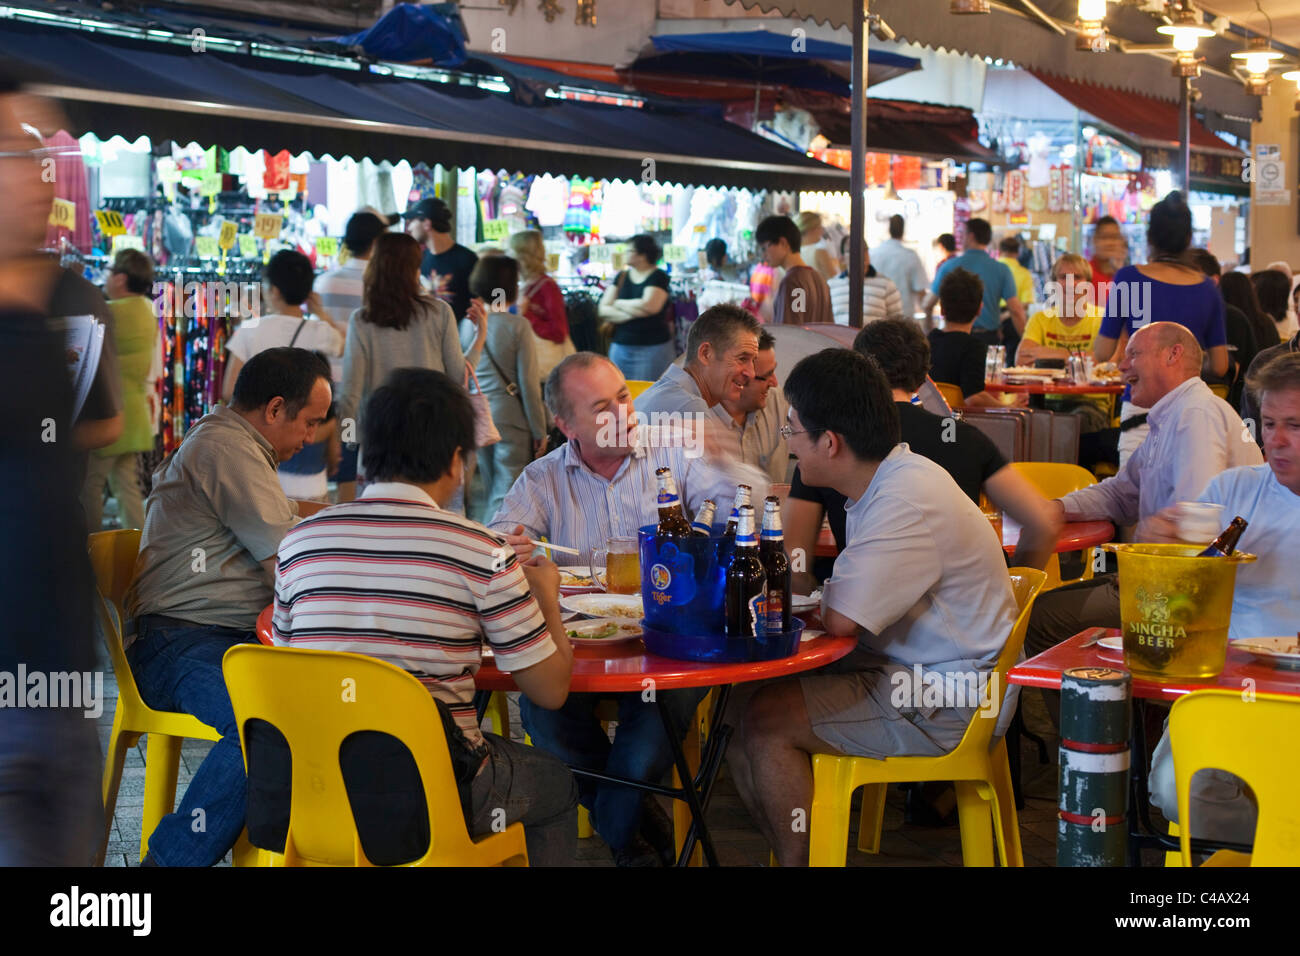 Singapore, Singapore, Chinatown. Diners at the Temple Street night market. - Stock Image